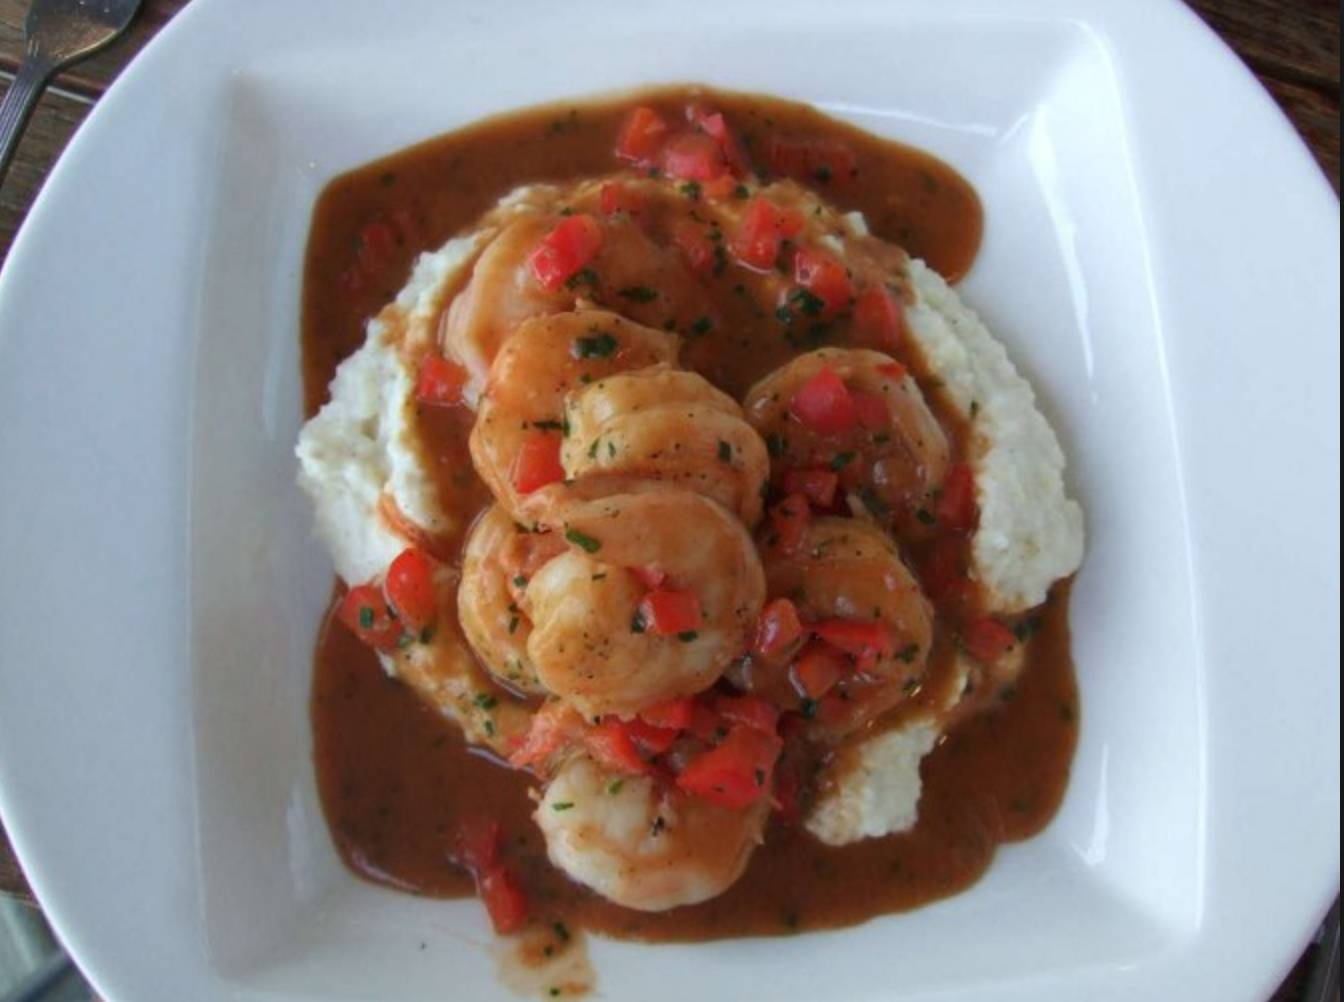 Friday Lunch Special: Shrimp & Grits